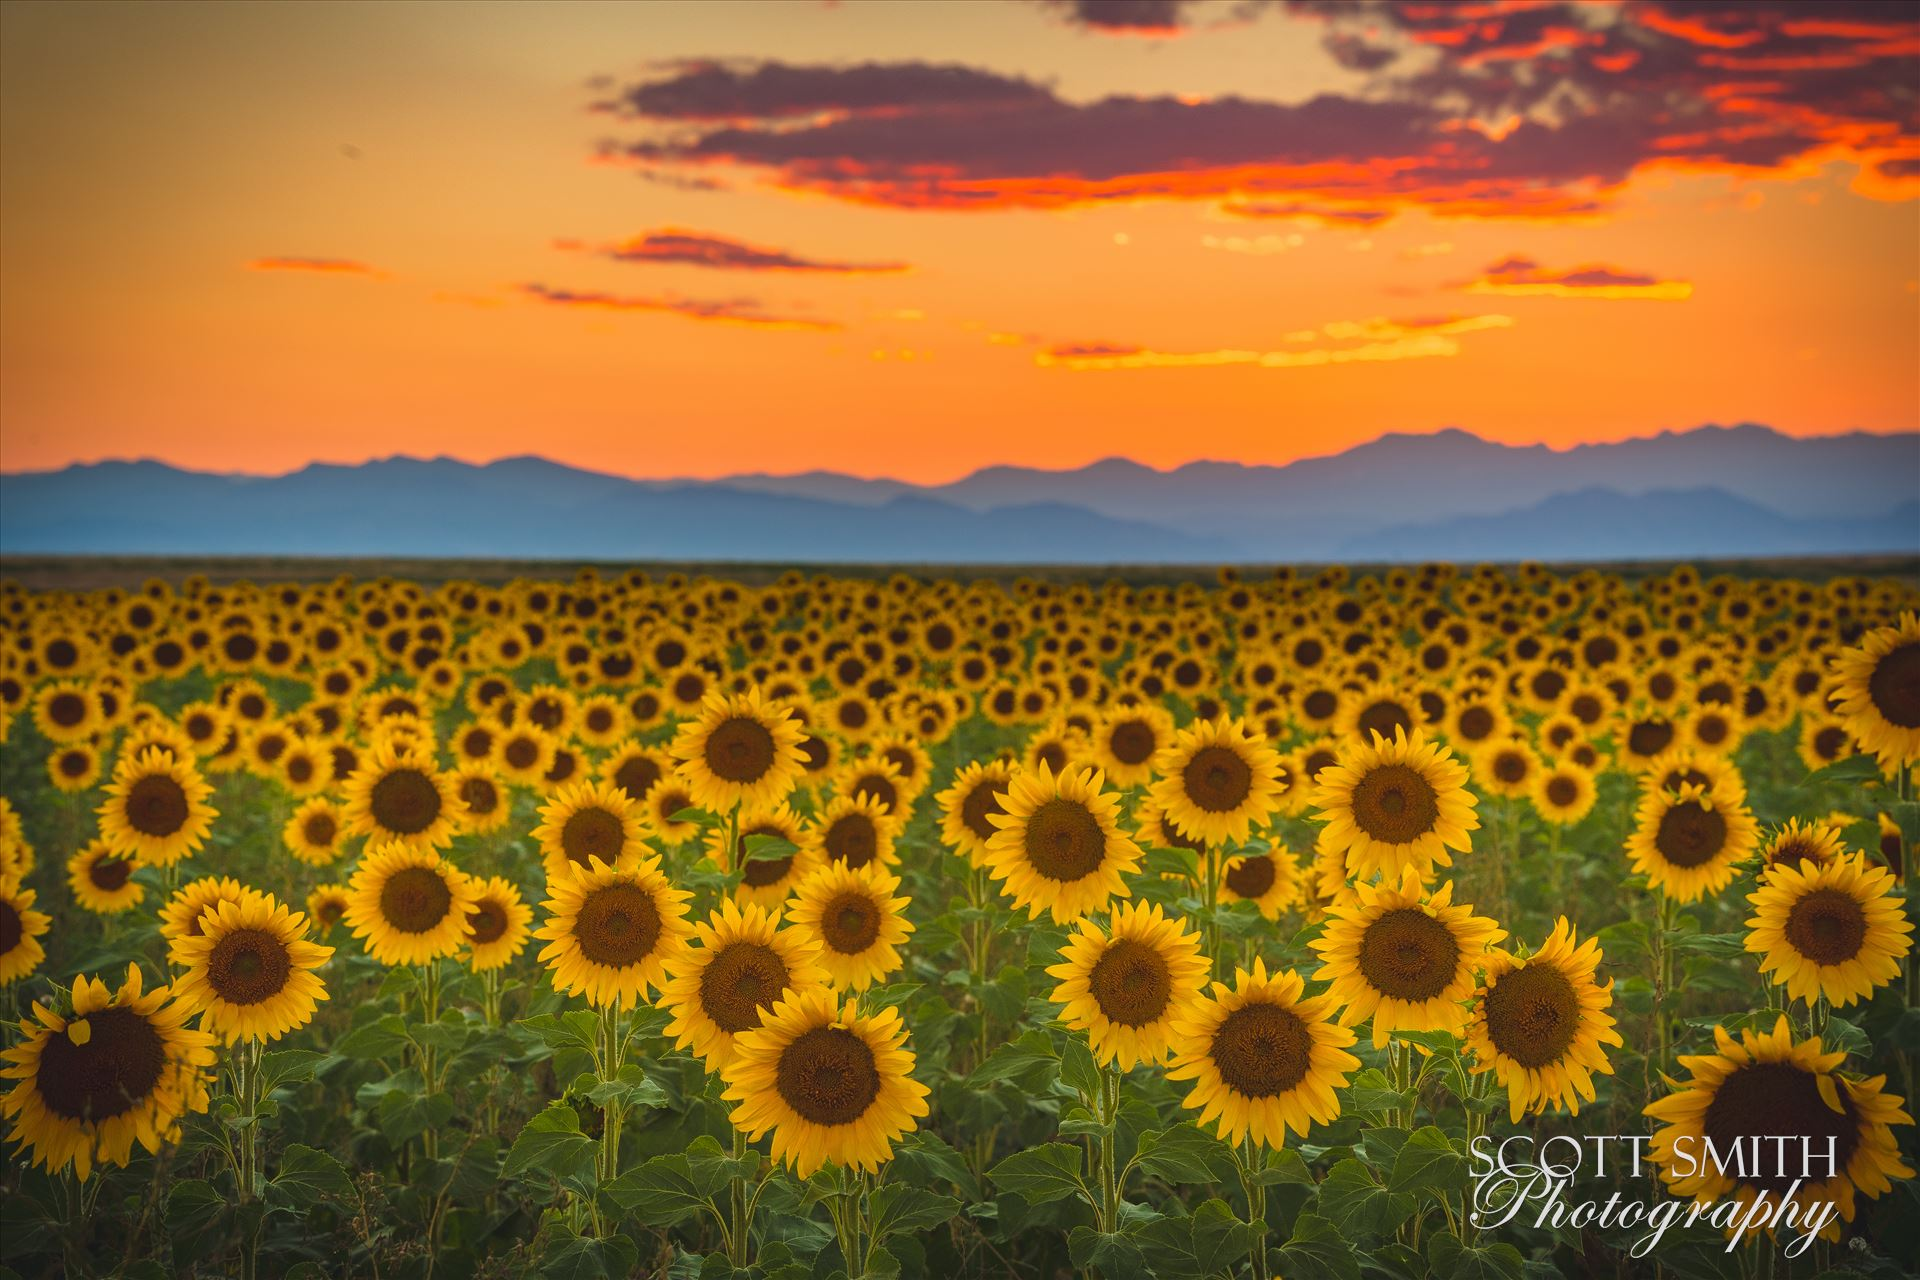 Denver Sunflowers at Sunset No 1 - Sunflower fields near Denver International Airport, on August 20th, 2016.Near 56th and E470. by D Scott Smith